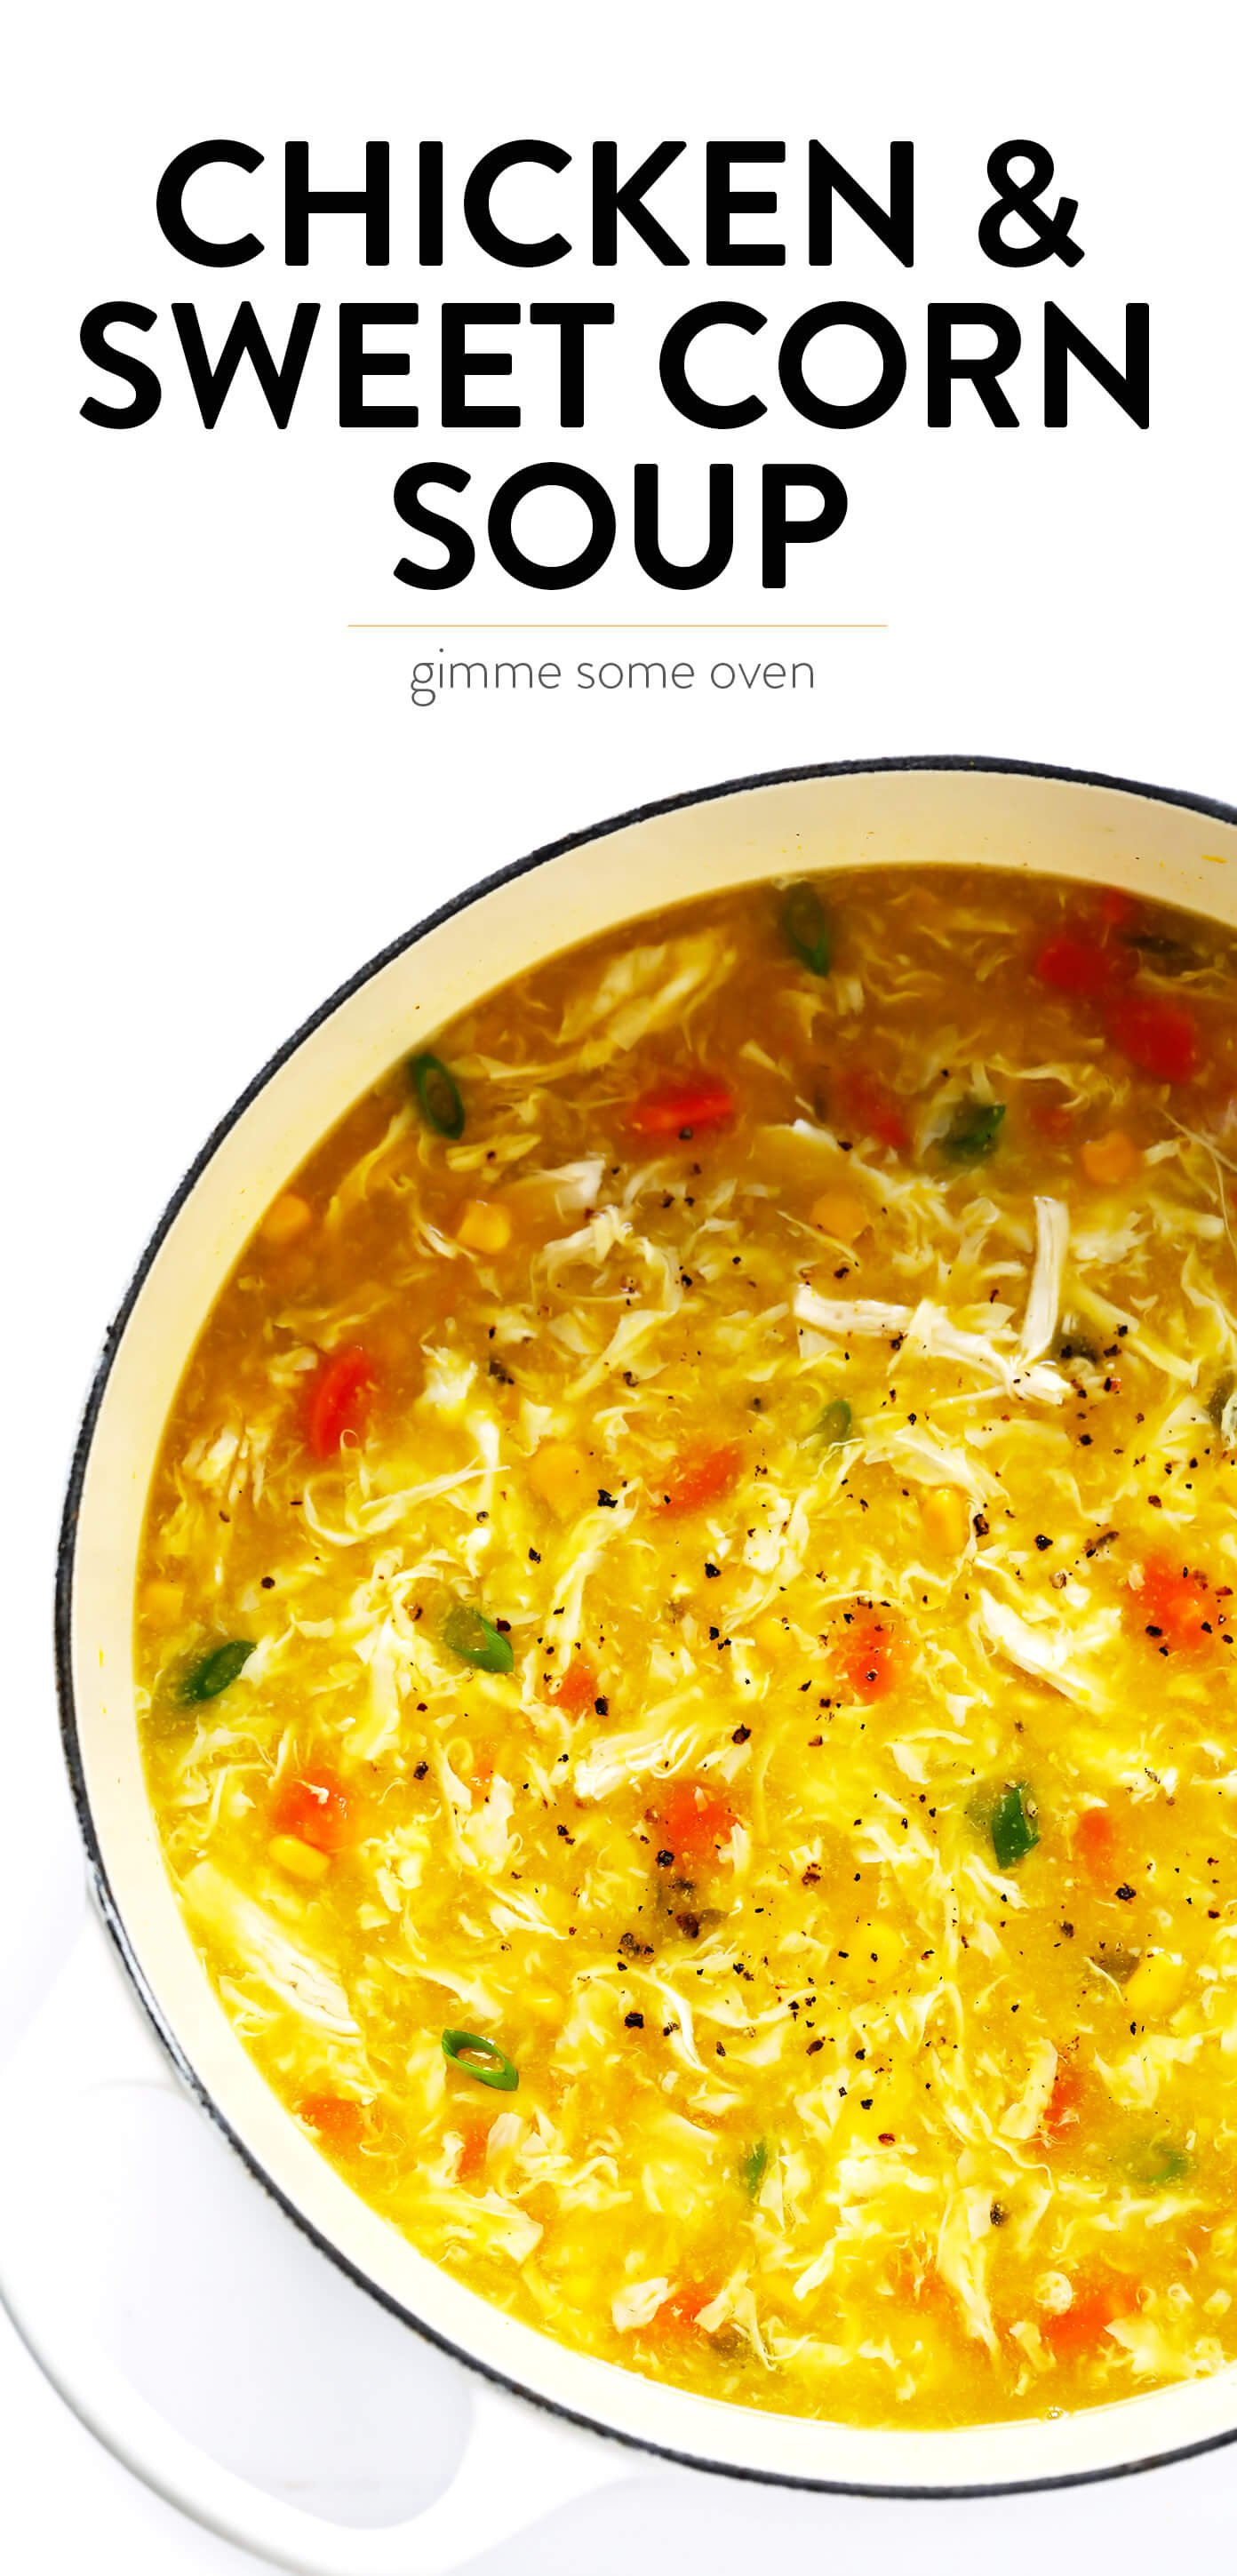 Chicken and Sweet Corn Soup Recipe